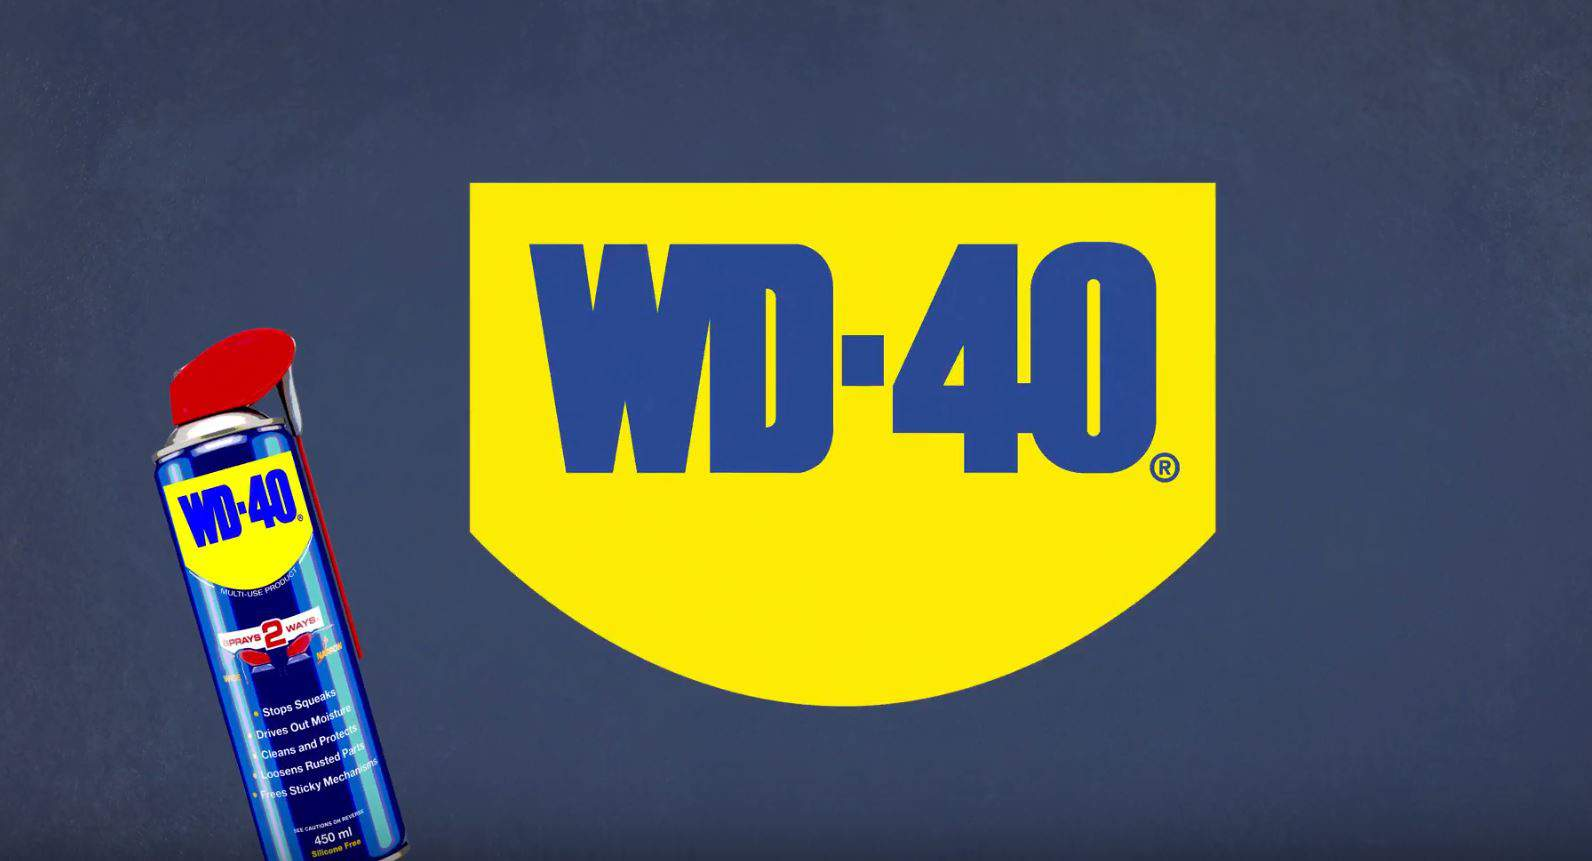 wd-40 about us thumbnail1